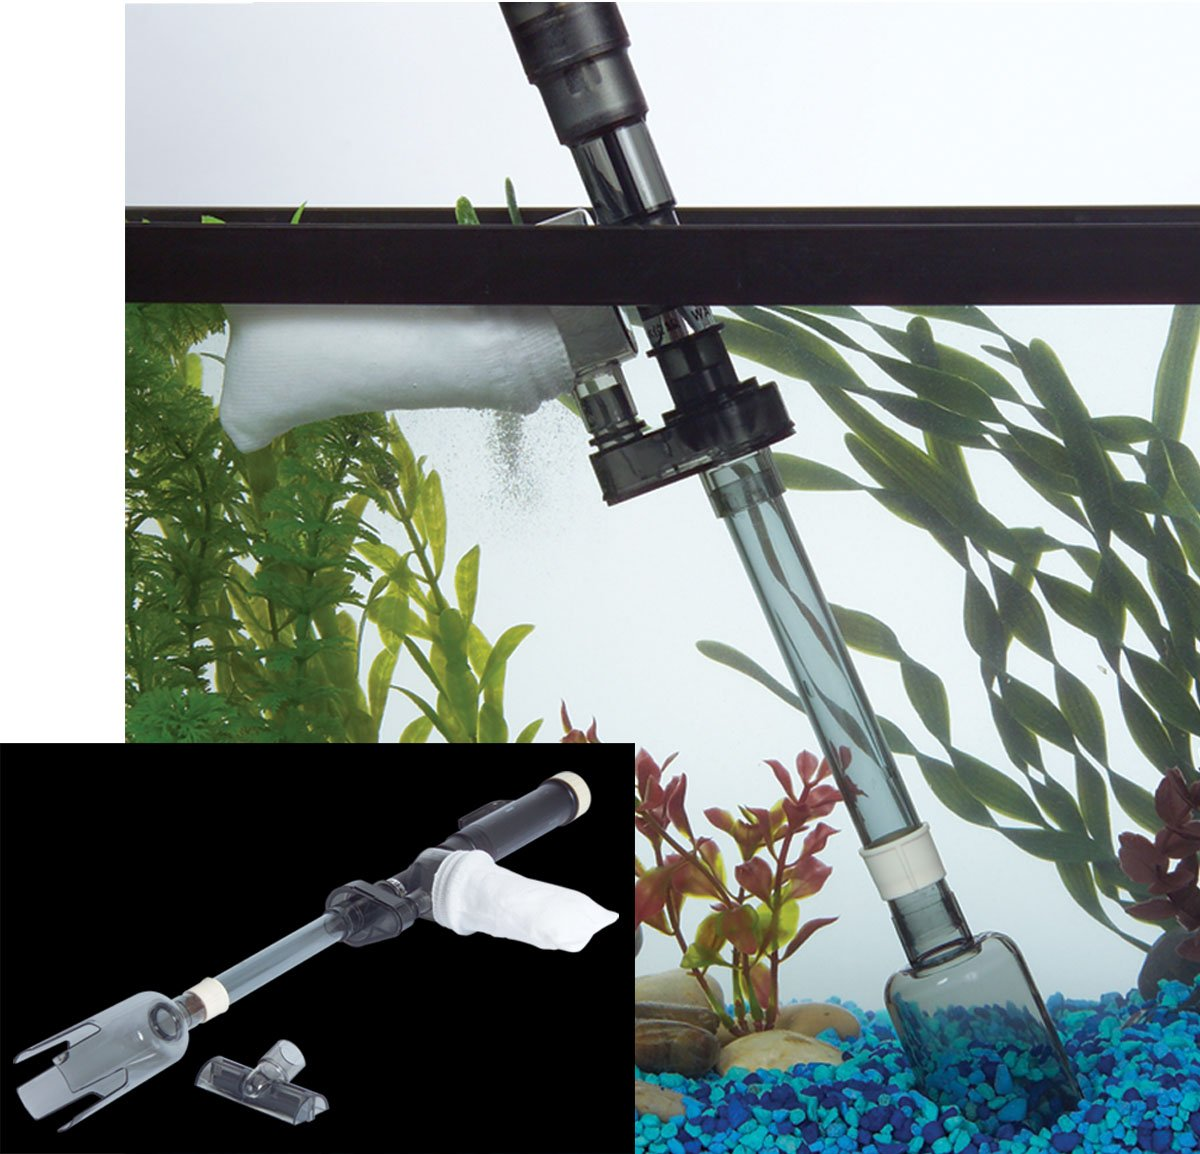 Koller Products TM1096 Tom Aquarium Mr. Cleaner Battery Operated Gravel Siphon by Koller Products (Image #3)